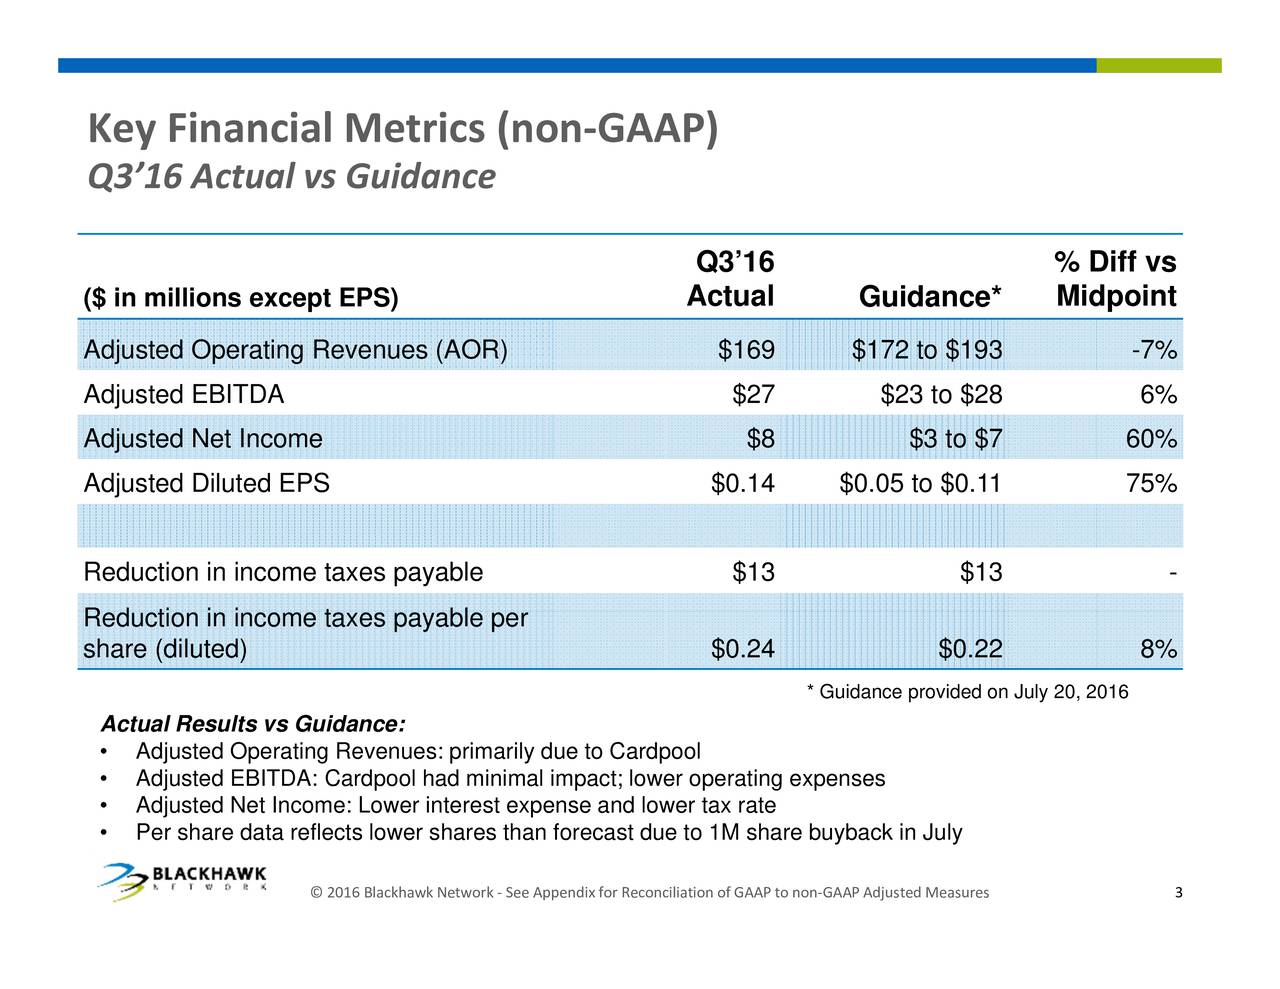 % Diff vsnt easures Guidance* djusted AAP * Guidance providnonon July 20, 2016 o ofAP Q316 Actual econciliation GAAP) or orecast due to 1M share buyback in July ppendix (non mal impacteower operating expenses erest expense and lower tax rate etwork Metricsdance lackhawk 016 s ts vs Guidance: Actual Financial Ac AdjusesdOdperIiDAR:Cardpoolprid intr shares than f Ke y 316 ($ inmdjlitjsstjAceptNgdRedRuedhncto(diloece)axeeapeaypbaeable per $ 8